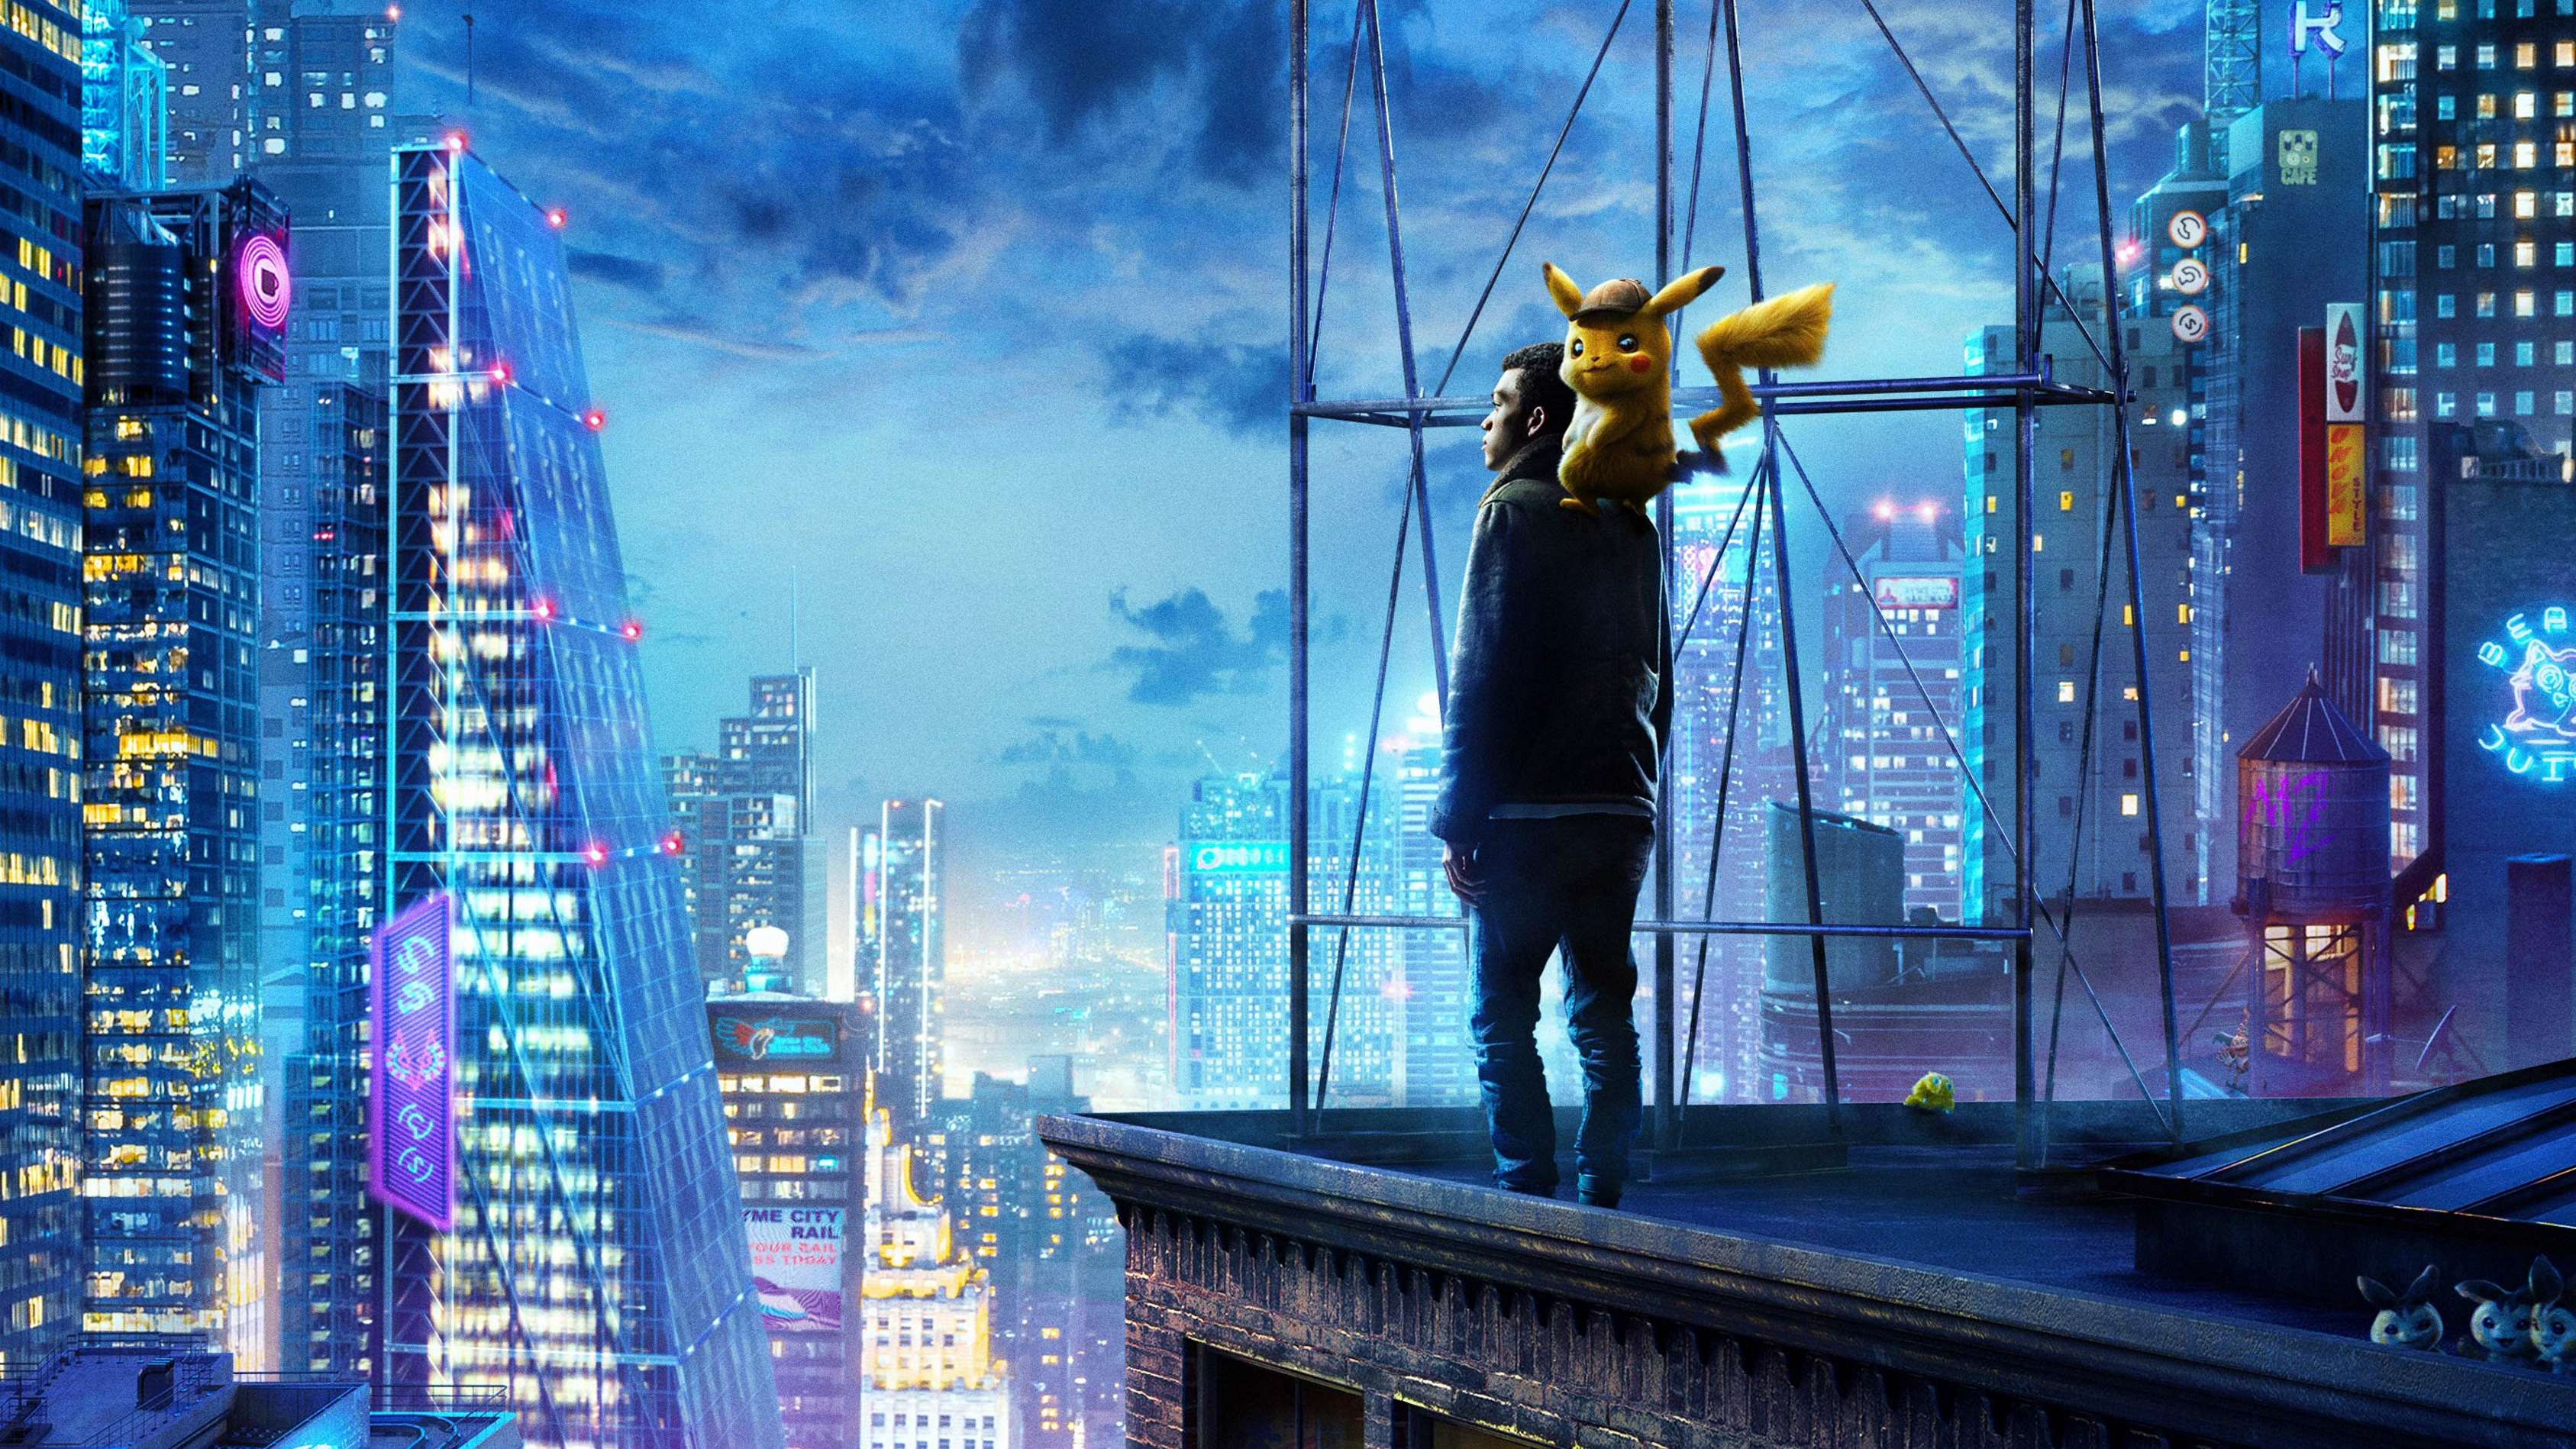 Sick Wallpapers For Iphone 5 Pok 201 Mon Detective Pikachu Wallpapers Hd Wallpapers Id